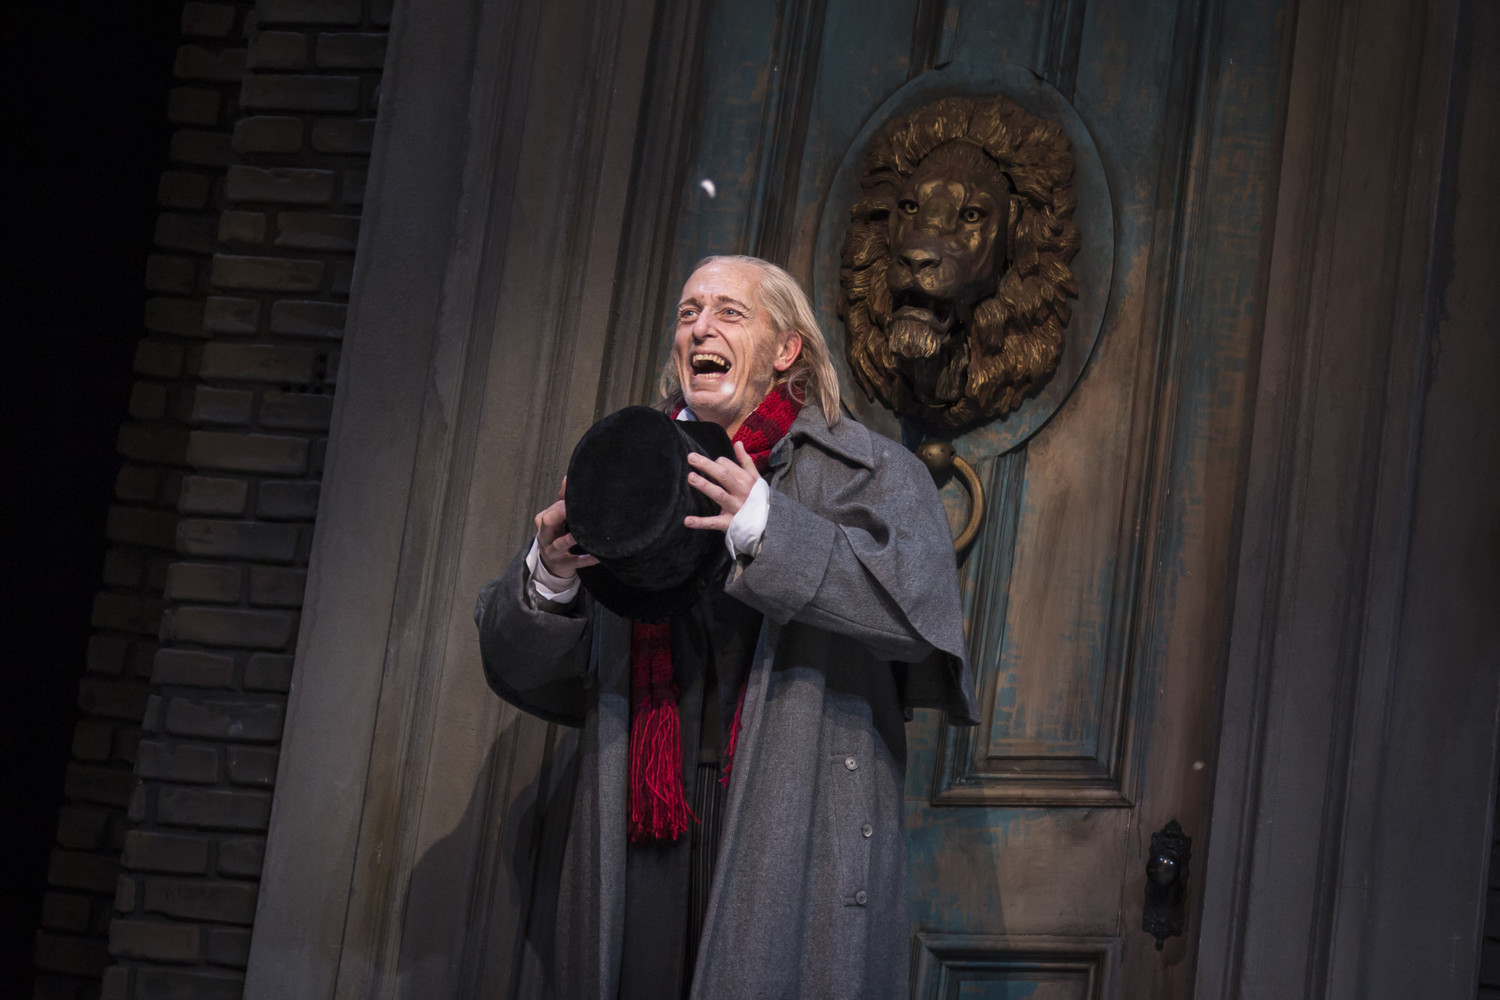 BWW Review: A CHRISTMAS CAROL at Goodman Theatre